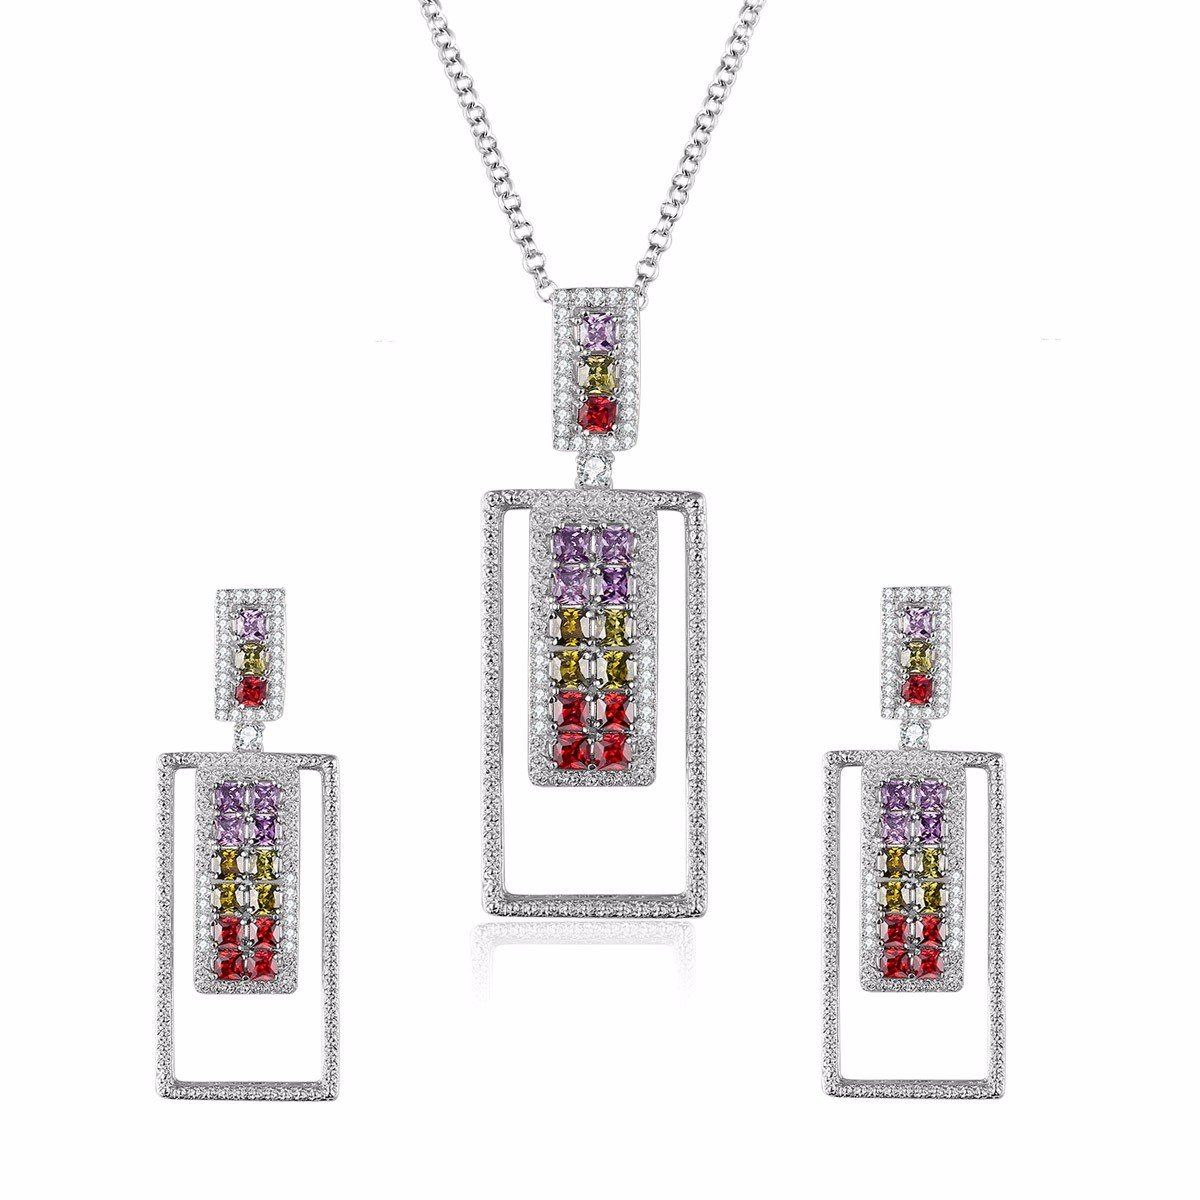 Caperci Sterling Silver Multi-Gemstone Pendant Necklace and Earrings Fine Jewelry Sets for Women